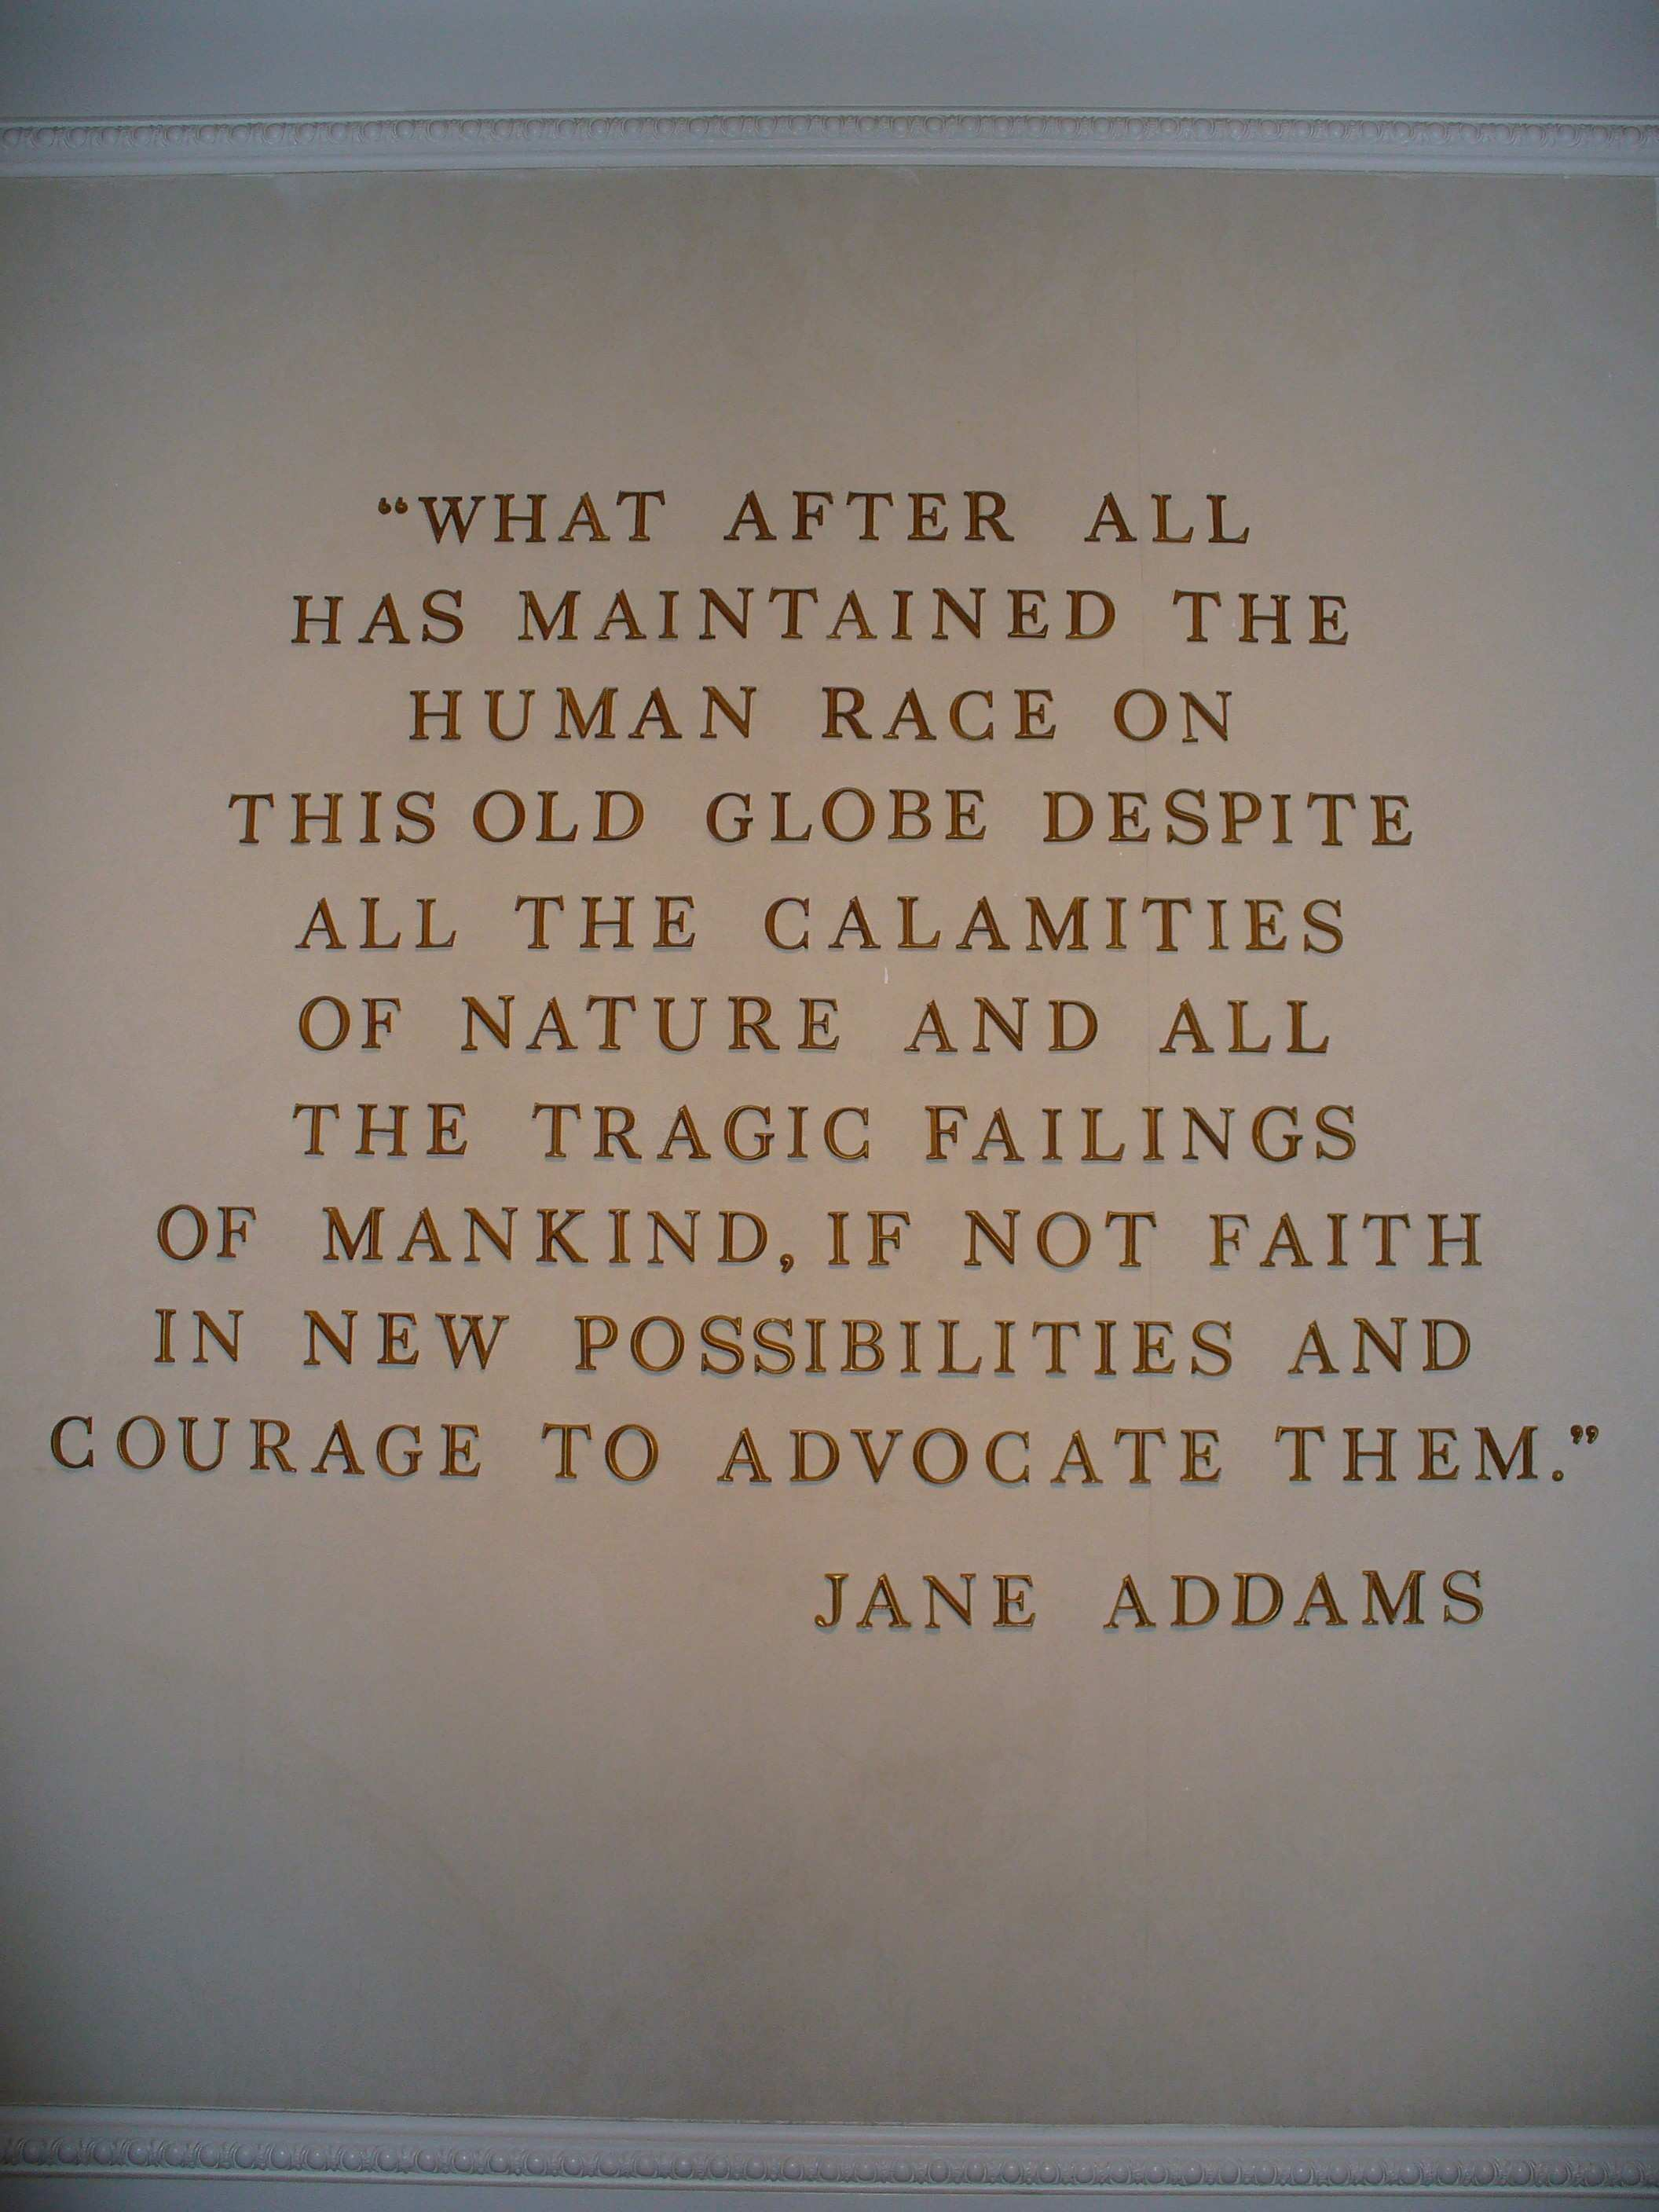 Quote Wall Art Elegant File Jane Addams Quote On the Wall American Adventure In the World